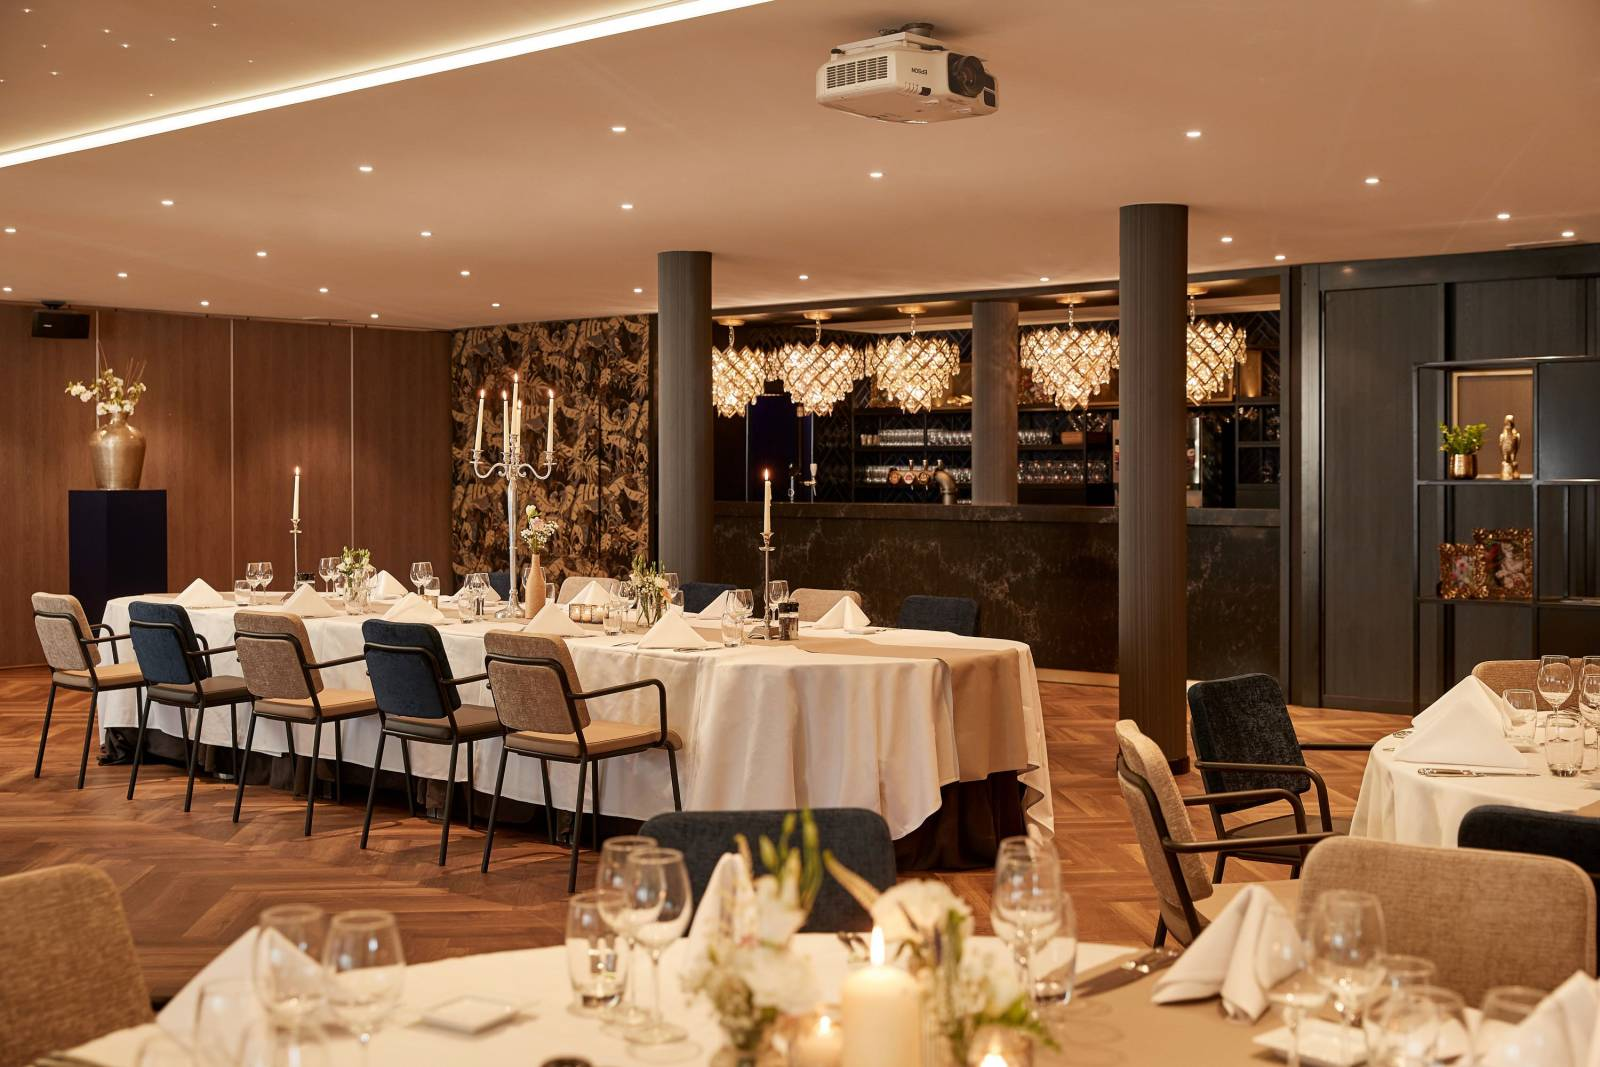 Van der Valk hotel Beveren - Feestzaal - Trouwzaal - House of Weddings - 8